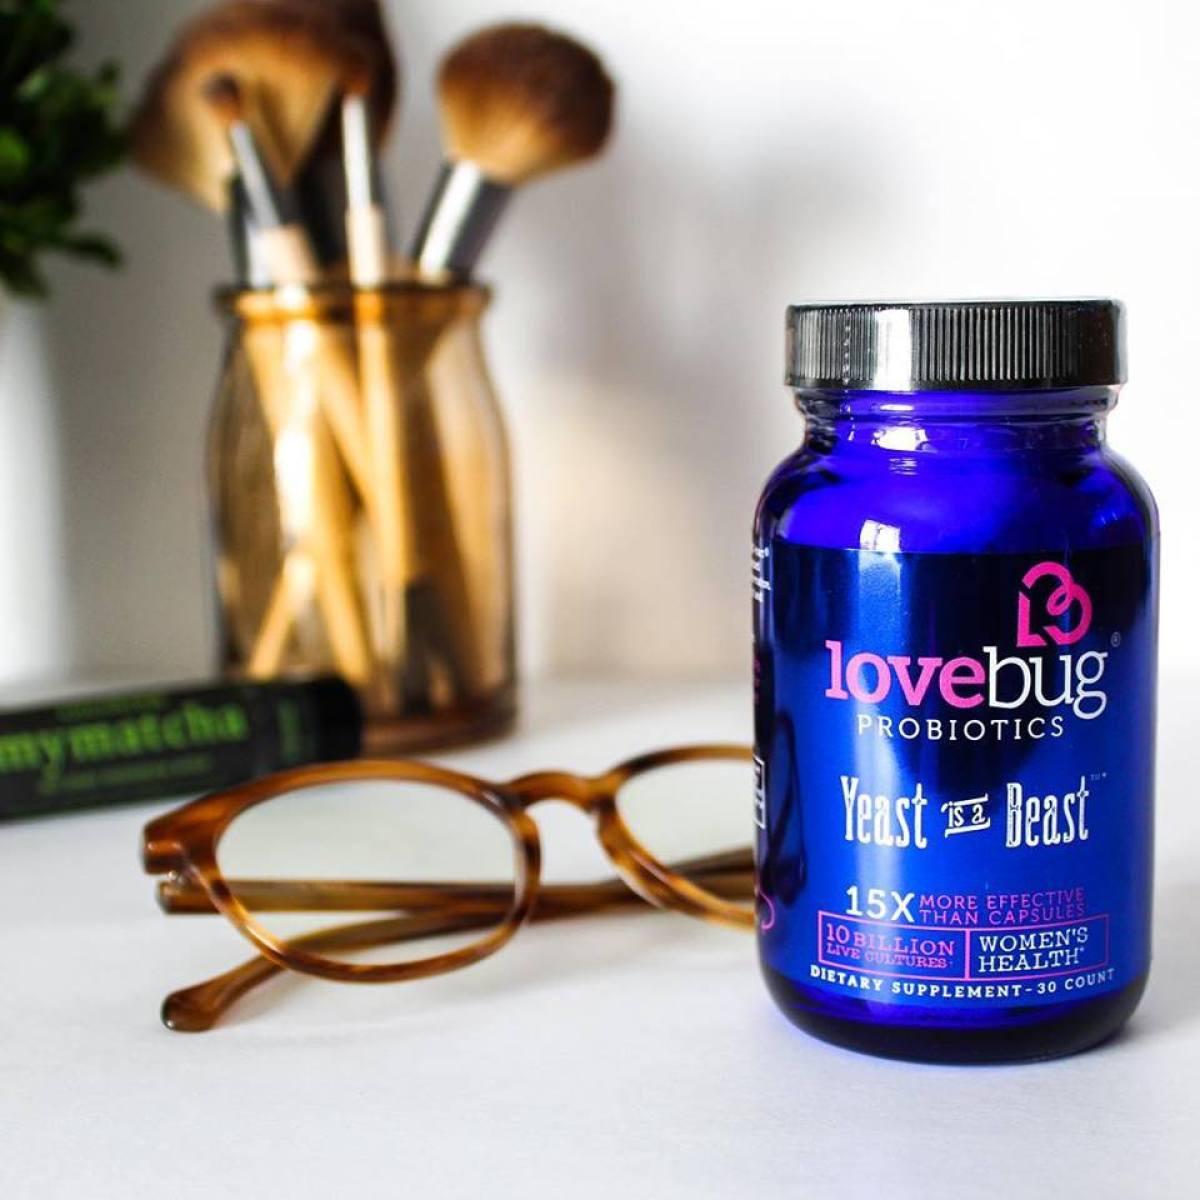 LoveBug probiotics on a counter by a pair of glasses and cosmetic brushes